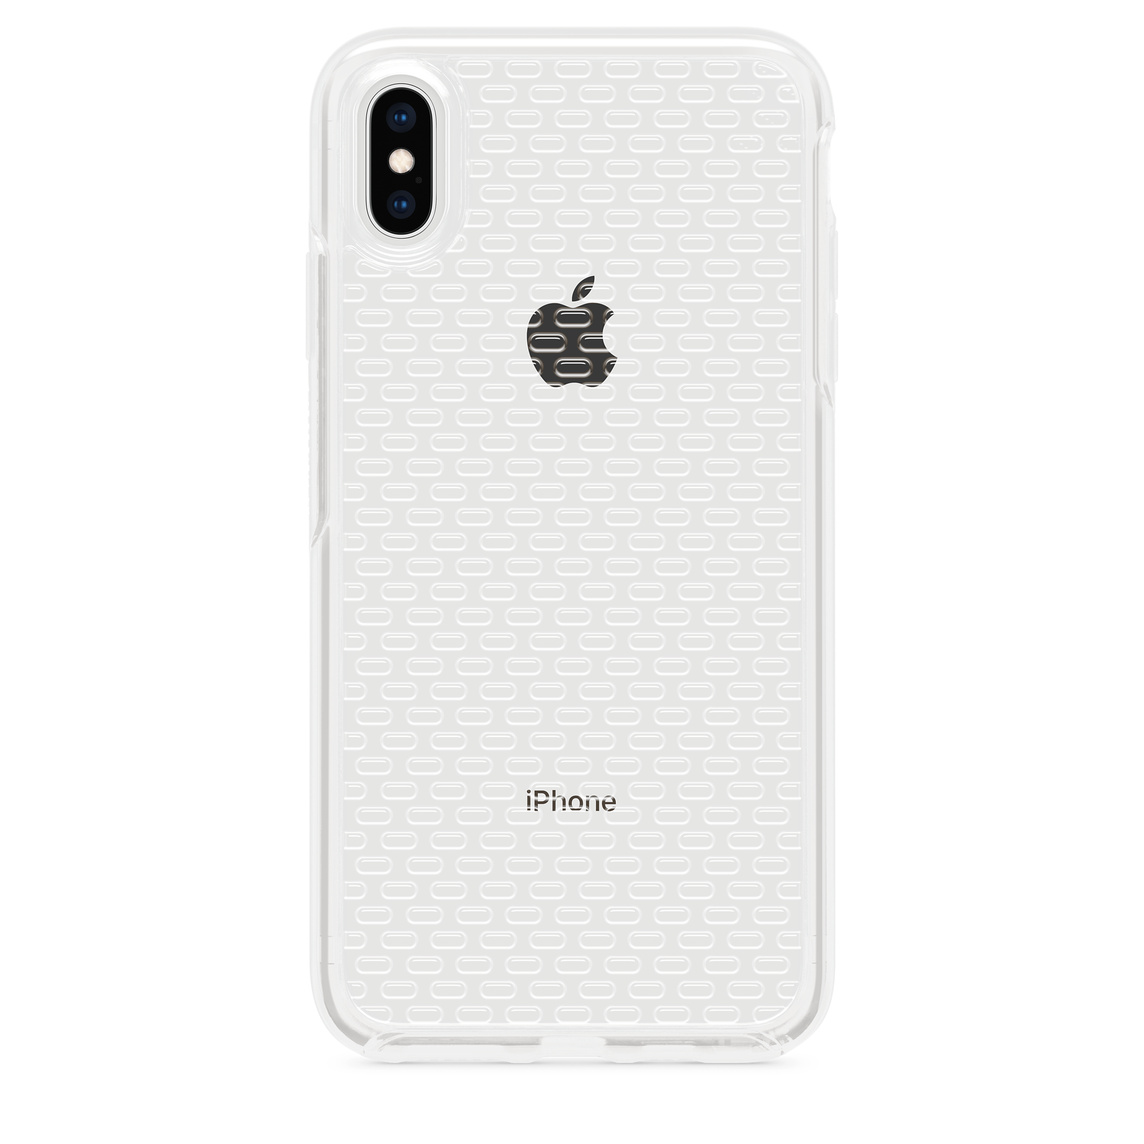 separation shoes 686c5 add52 OtterBox Vue Series Case for iPhone XS Max - Clear